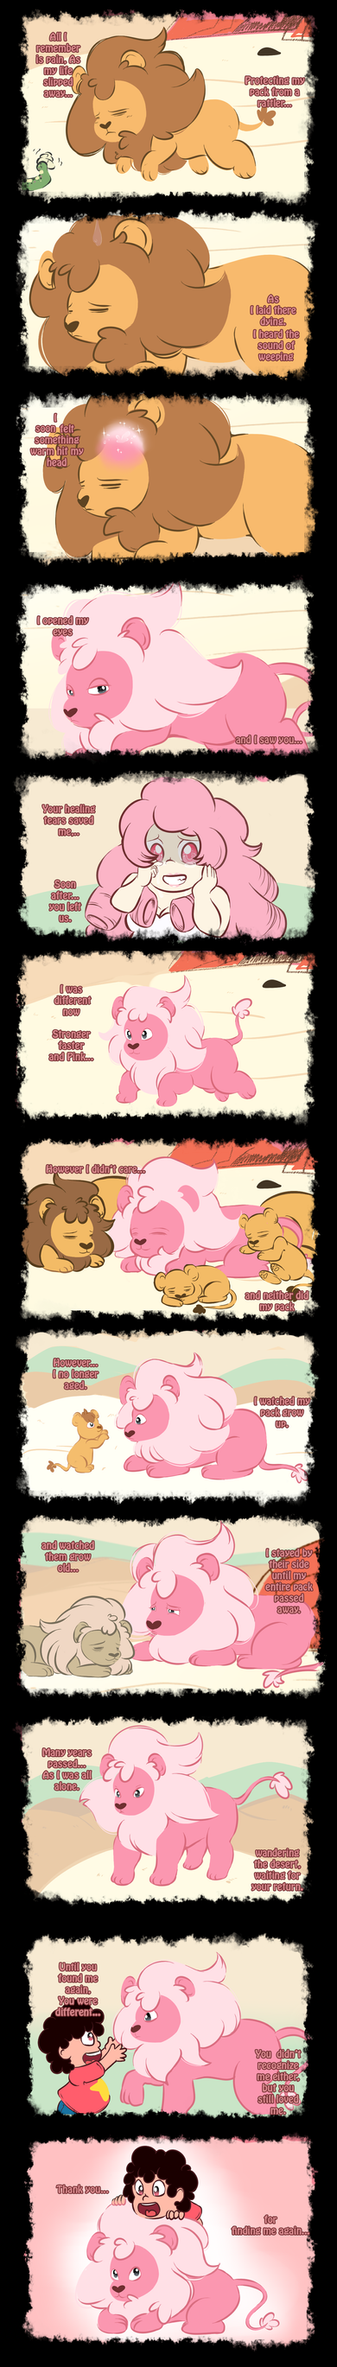 Steven Universe_-_Lion Comic by ProjectHalfbreed